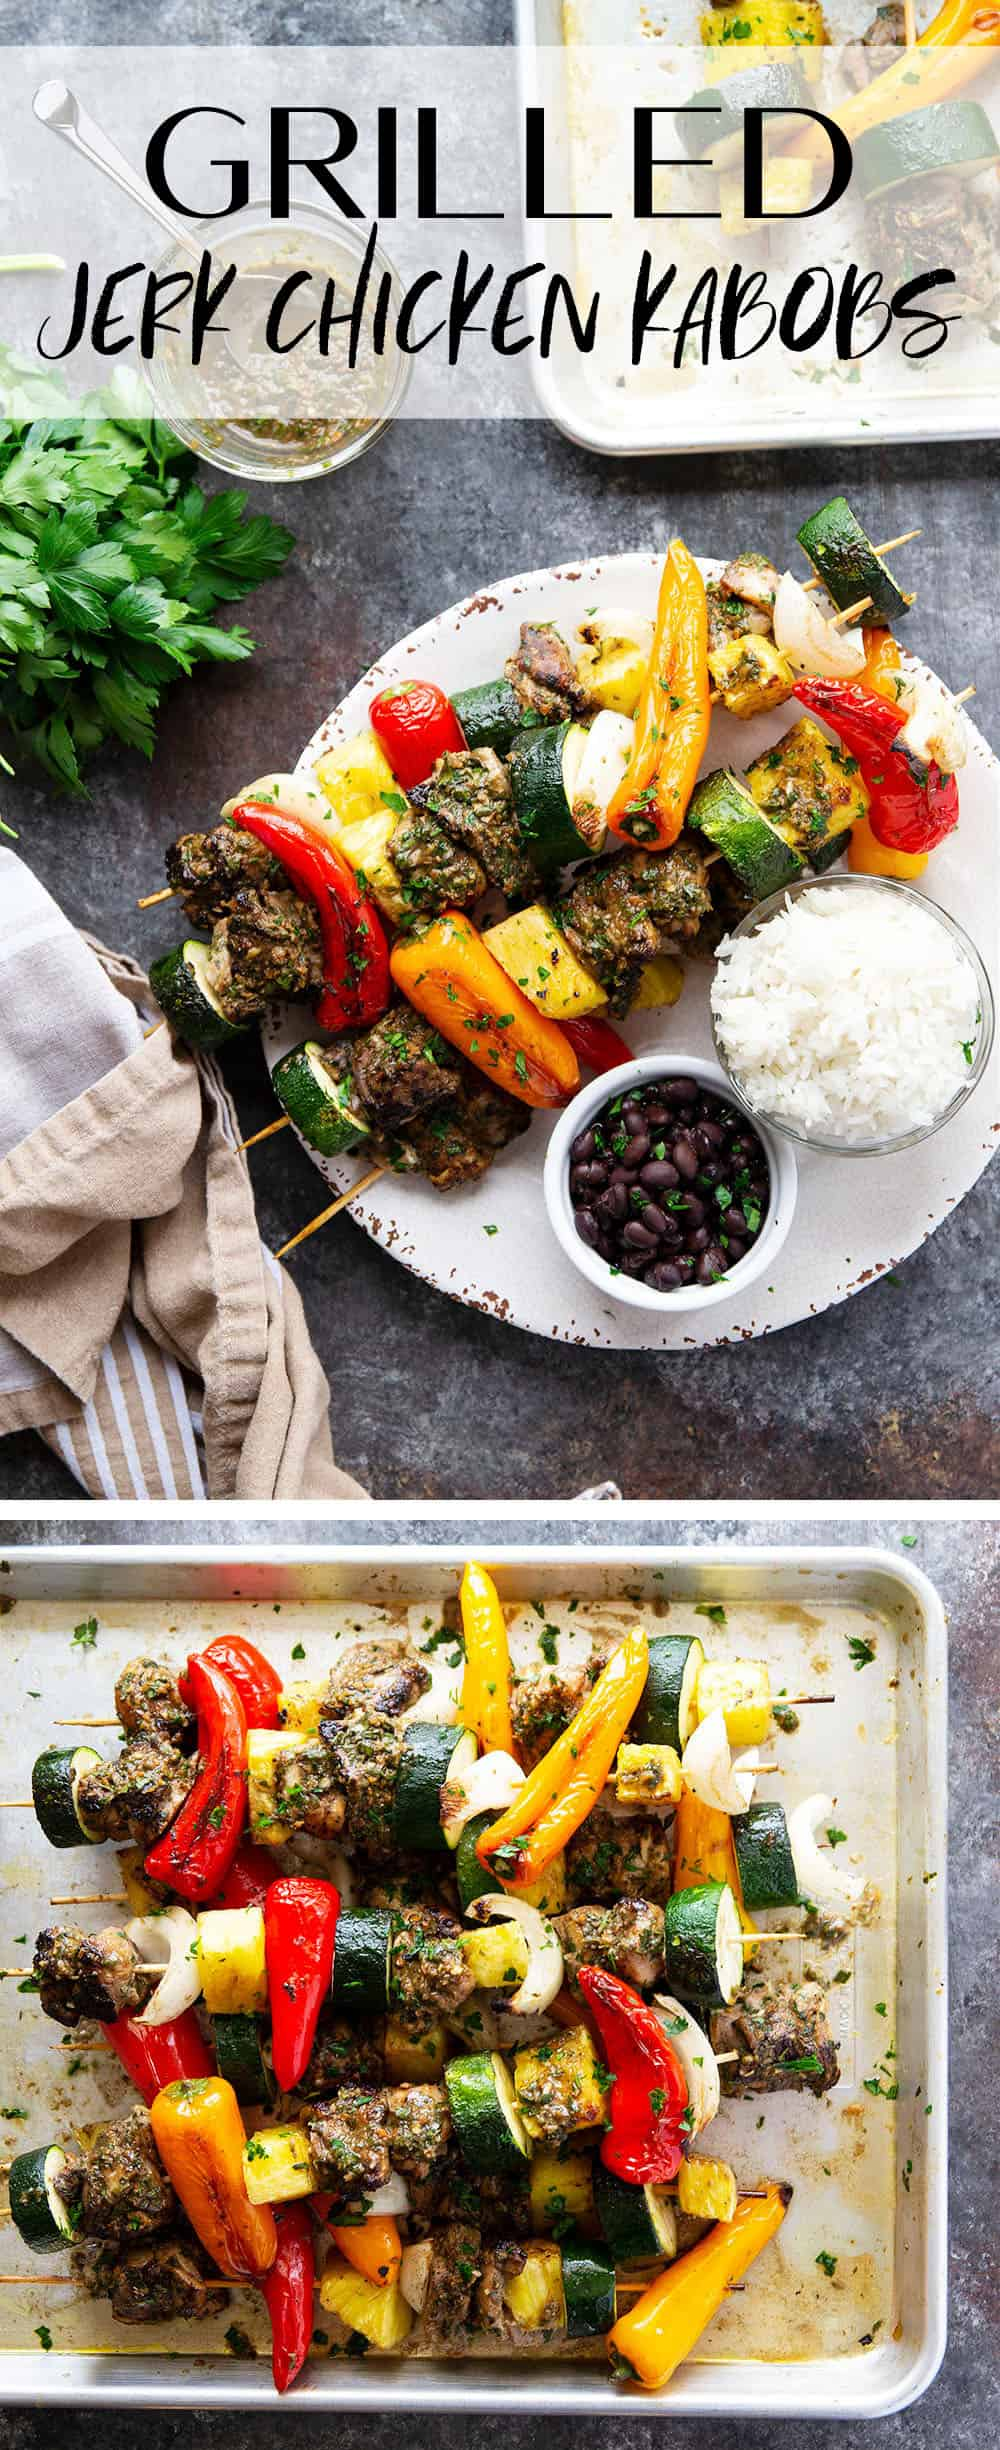 Grilled jerk chicken kabobs feature a spicy homemade jerk marinade coating juicy chicken thighs, sweet pineapple, and fresh vegetables.